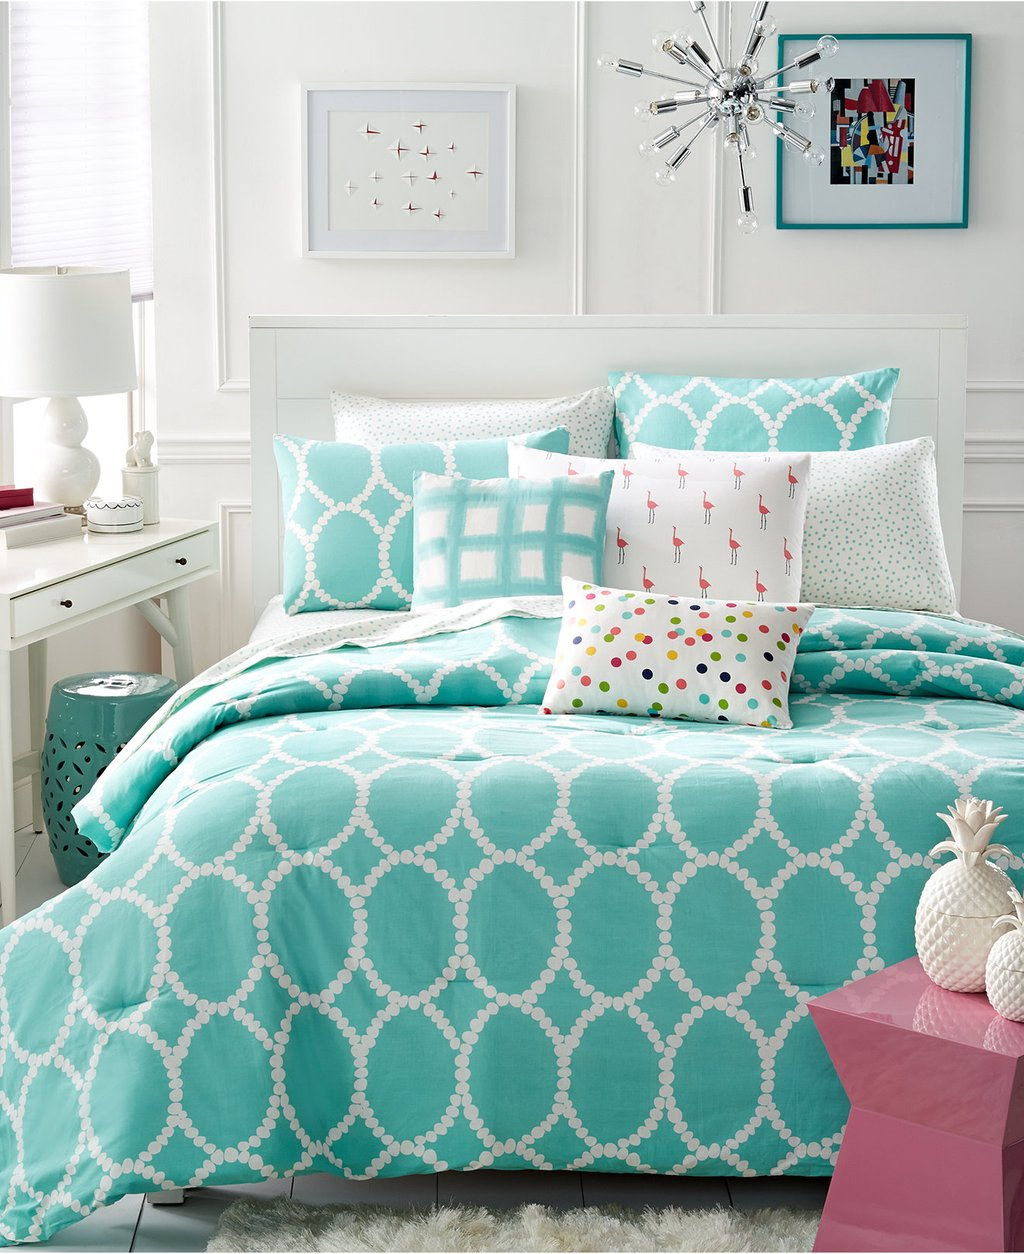 Gold Teal Bedding Mint Mini Floral Baby Bedding The True Meaning Of Round Crib Bedding